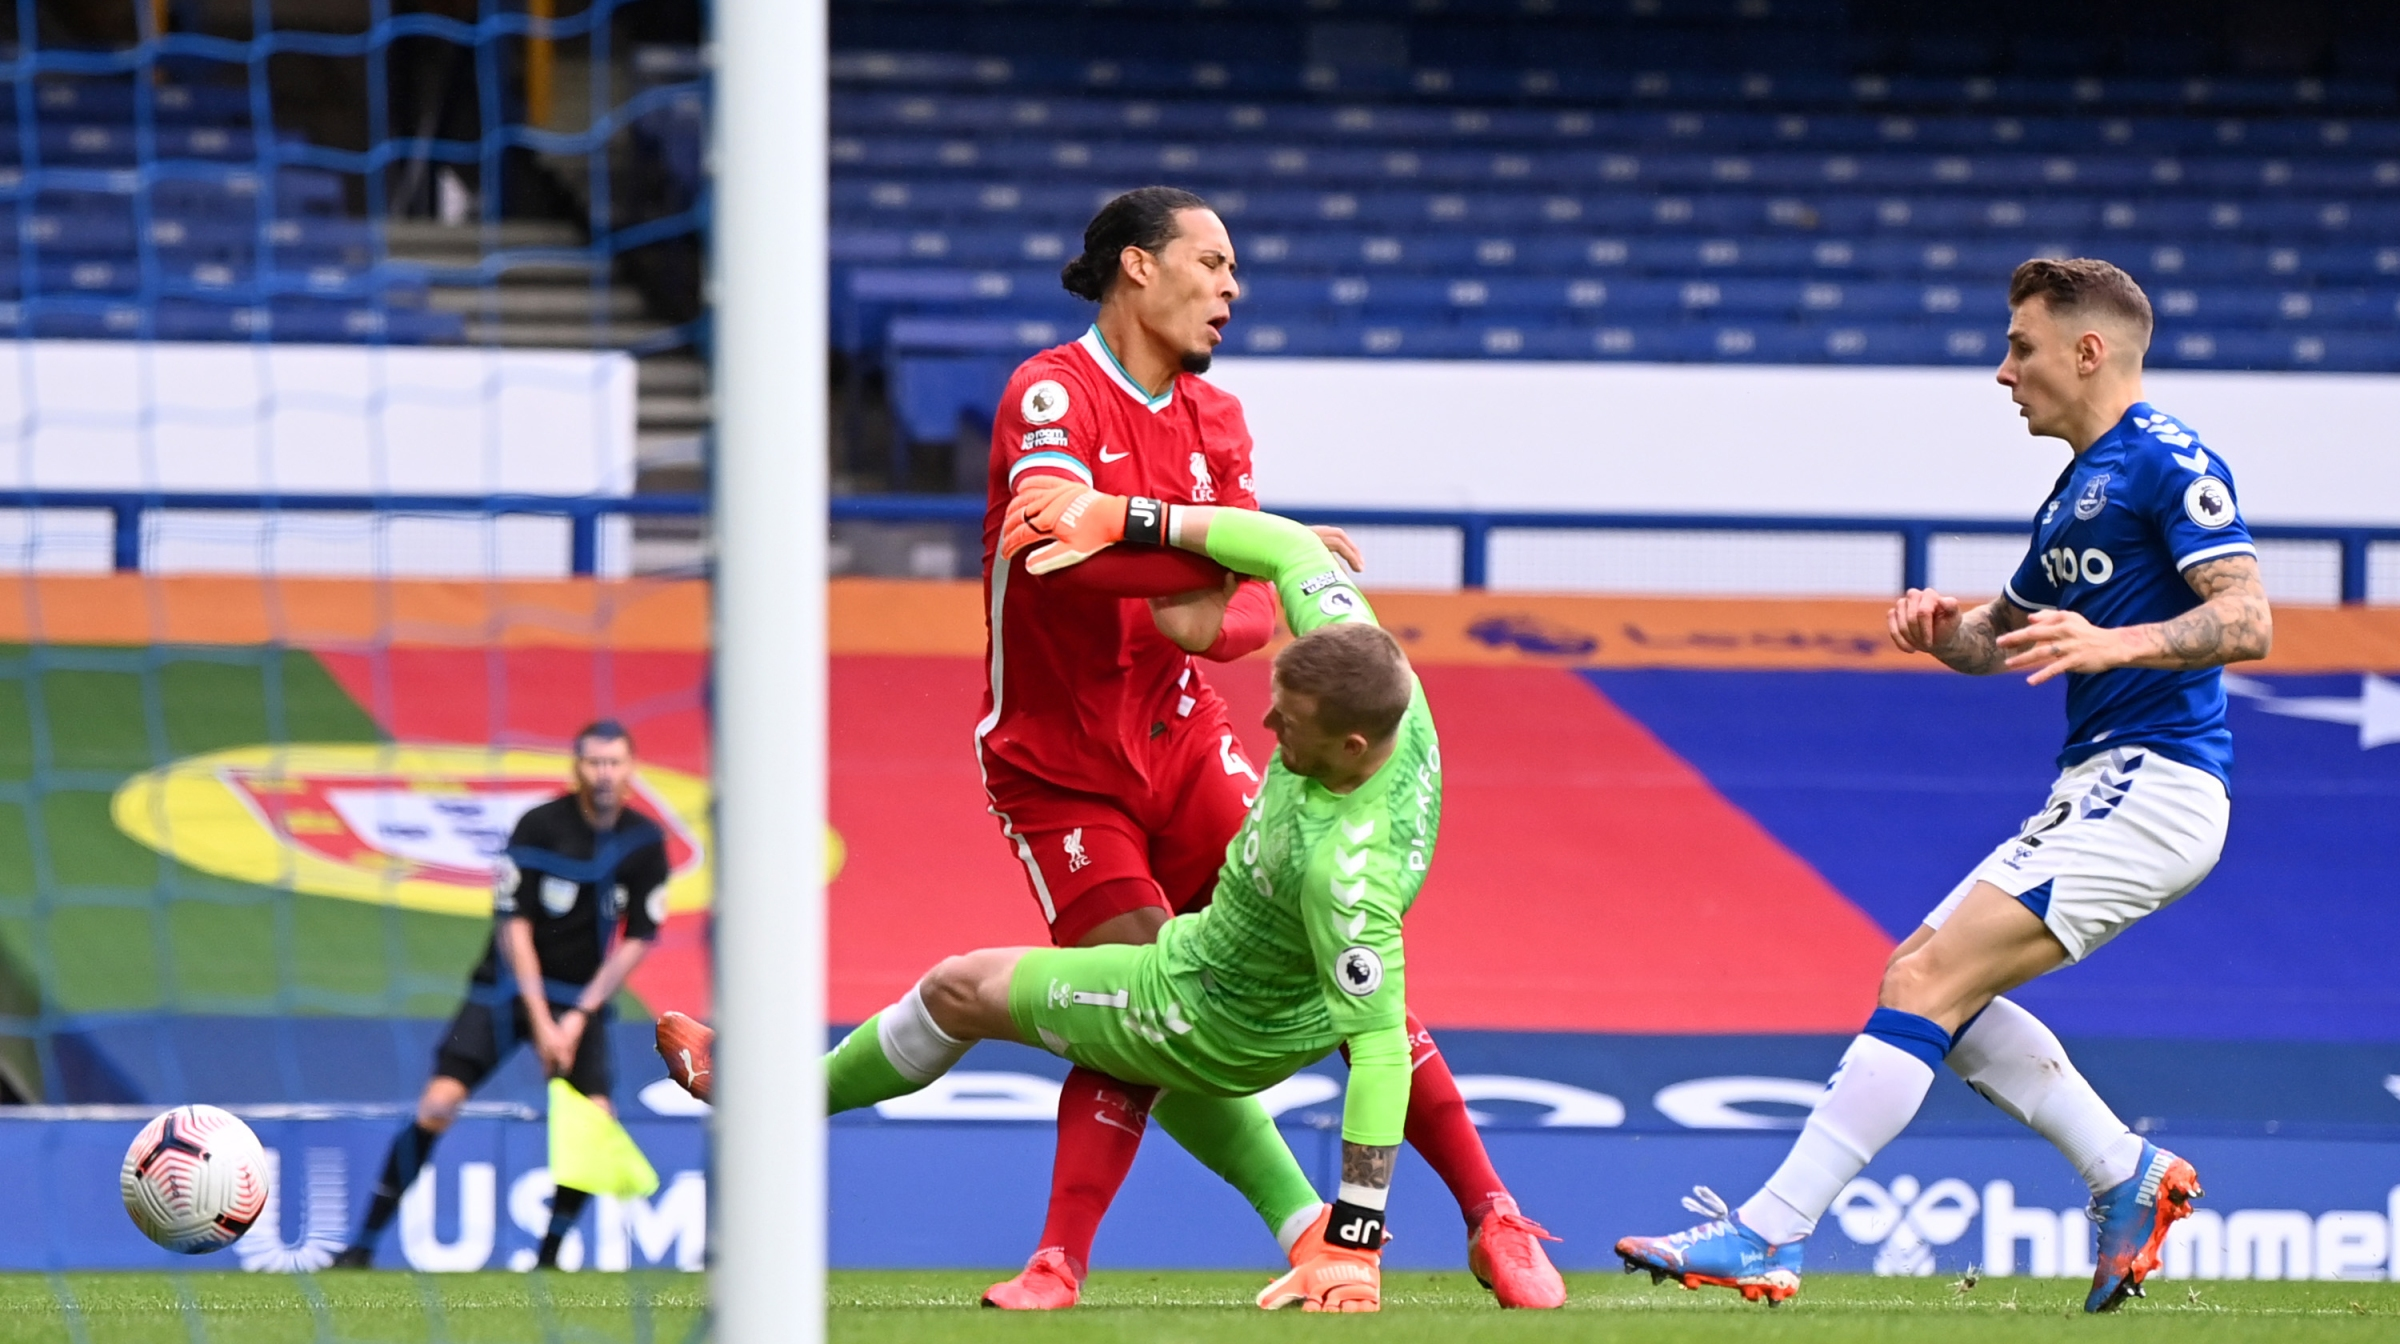 Virgil van Dijk of Liverpool is tackled by Jordan Pickford of Everton which led to Virgil van Dijk being substituted for an injury during the Premier League match between Everton and Liverpool